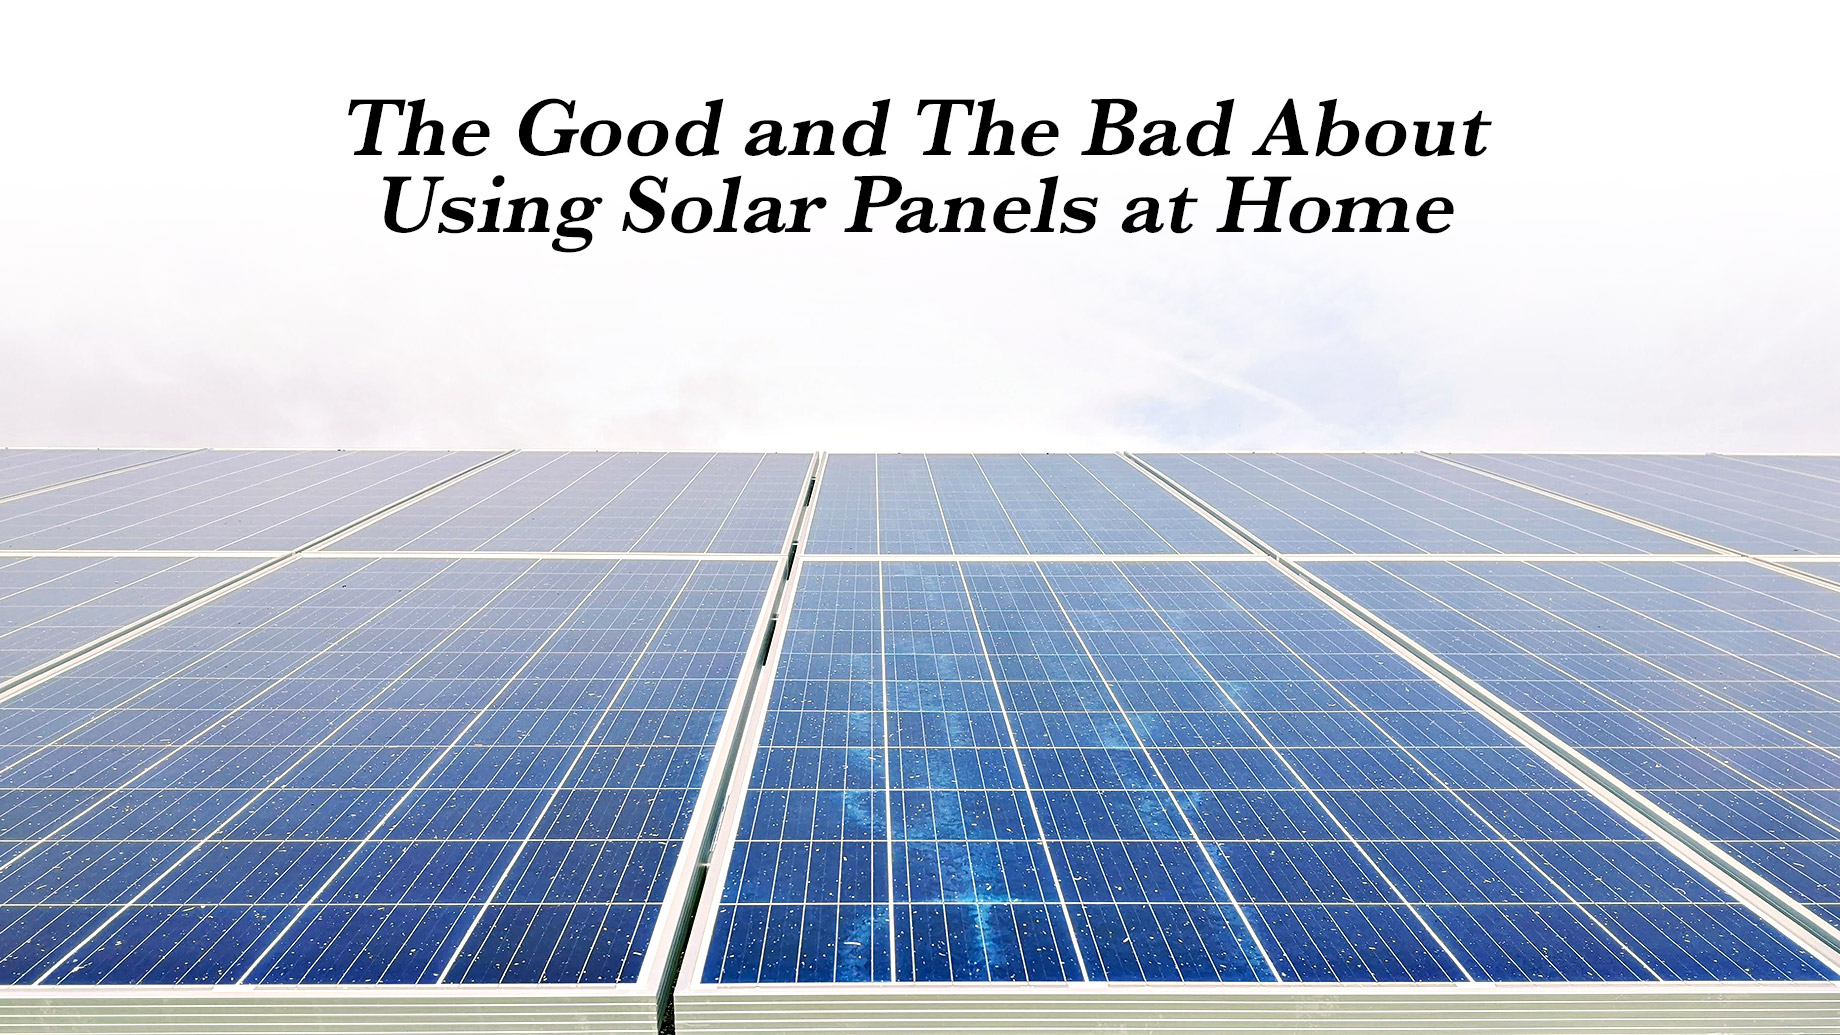 The Good and The Bad About Using Solar Panels at Home